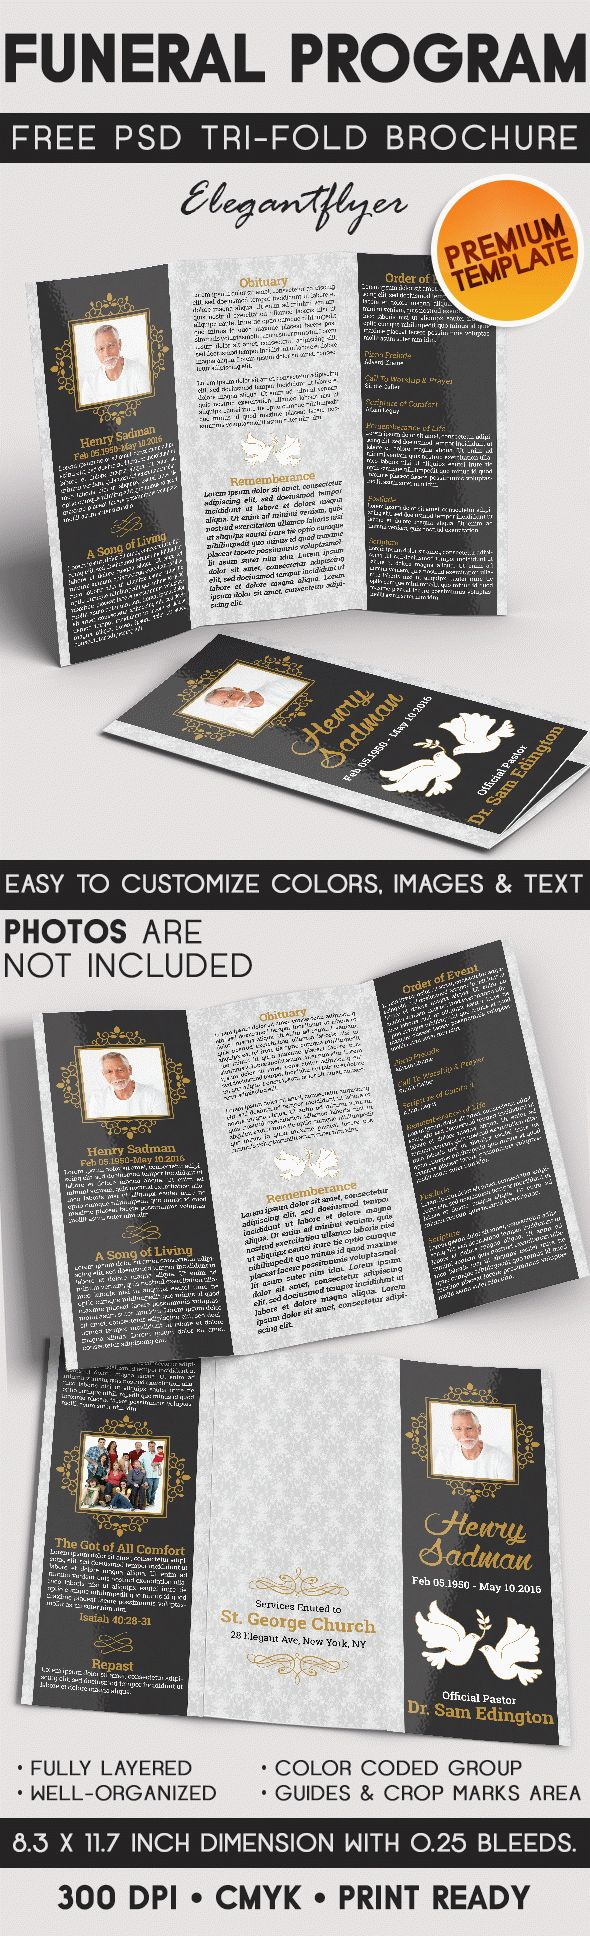 Tri fold brochure for funeral program by elegantflyer for Funeral brochure template